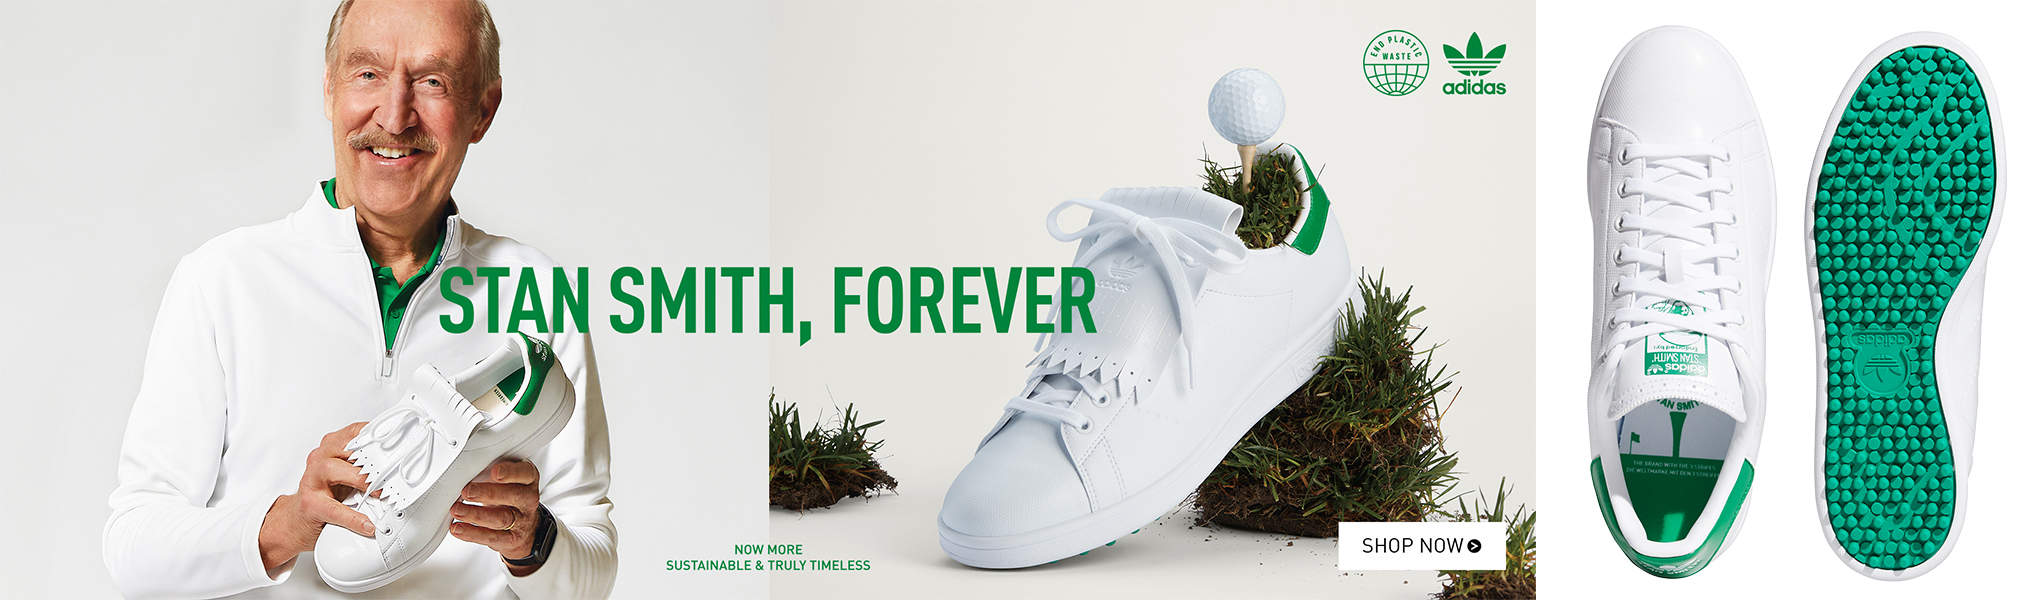 Adidas Stan Smith Special Edition. Stan Smith Forever. Buy Now.